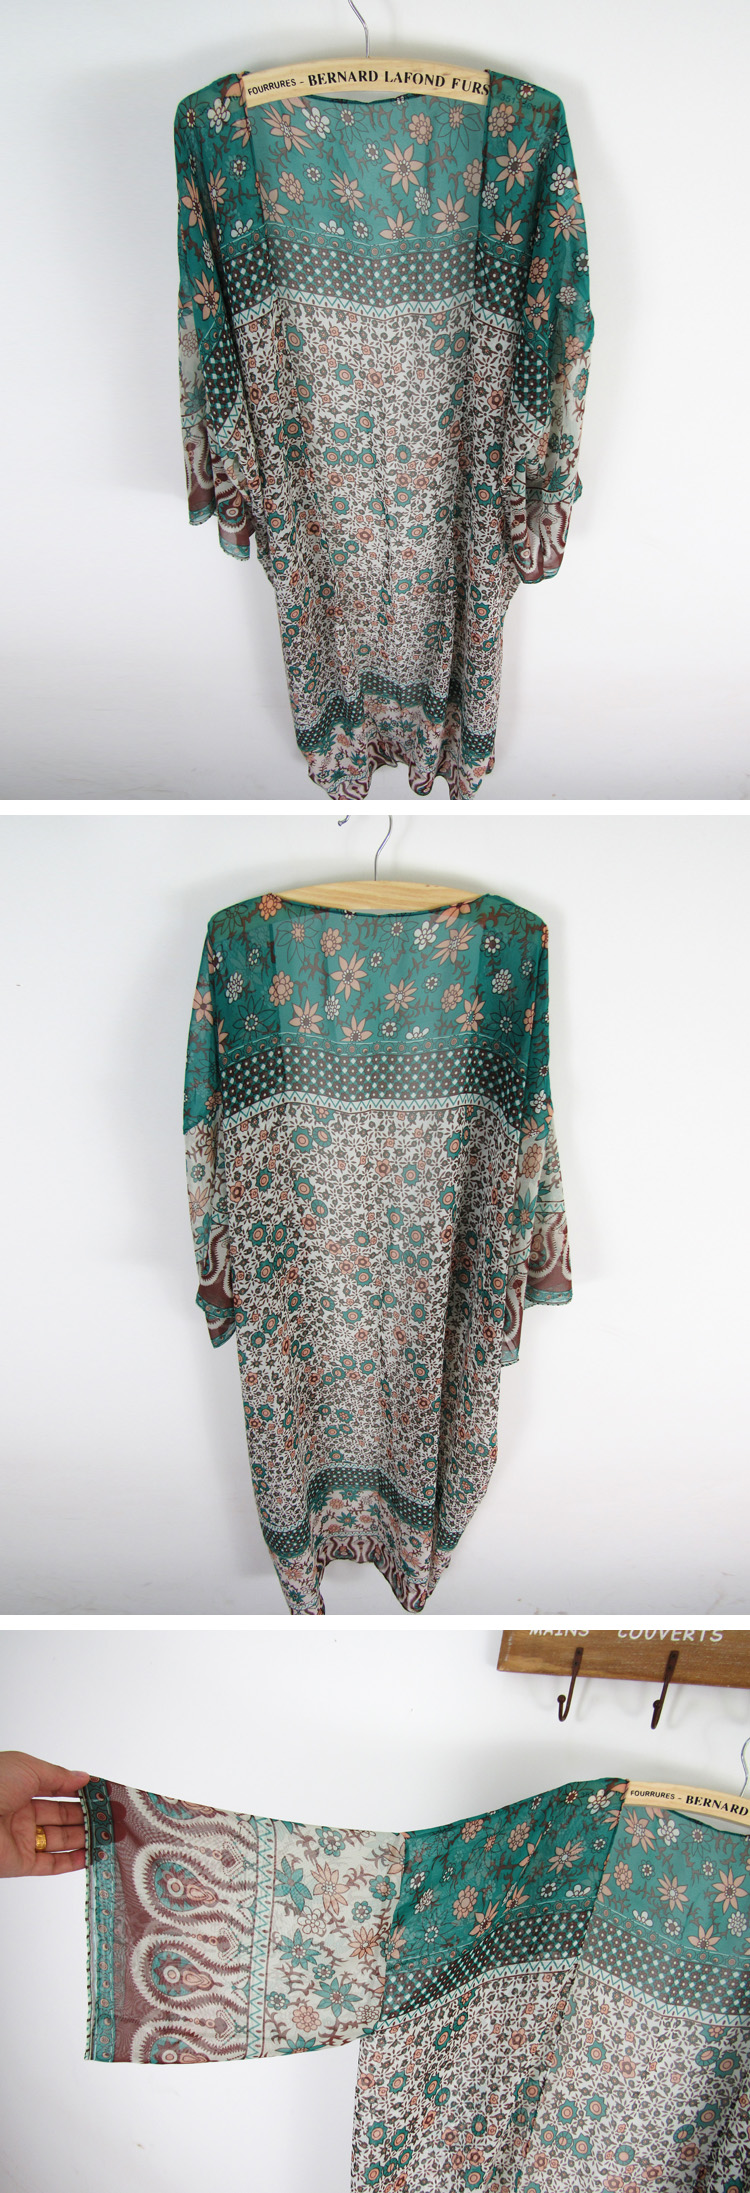 Chiffon Fashiondress(Green floral) NHXW0045-Green floral